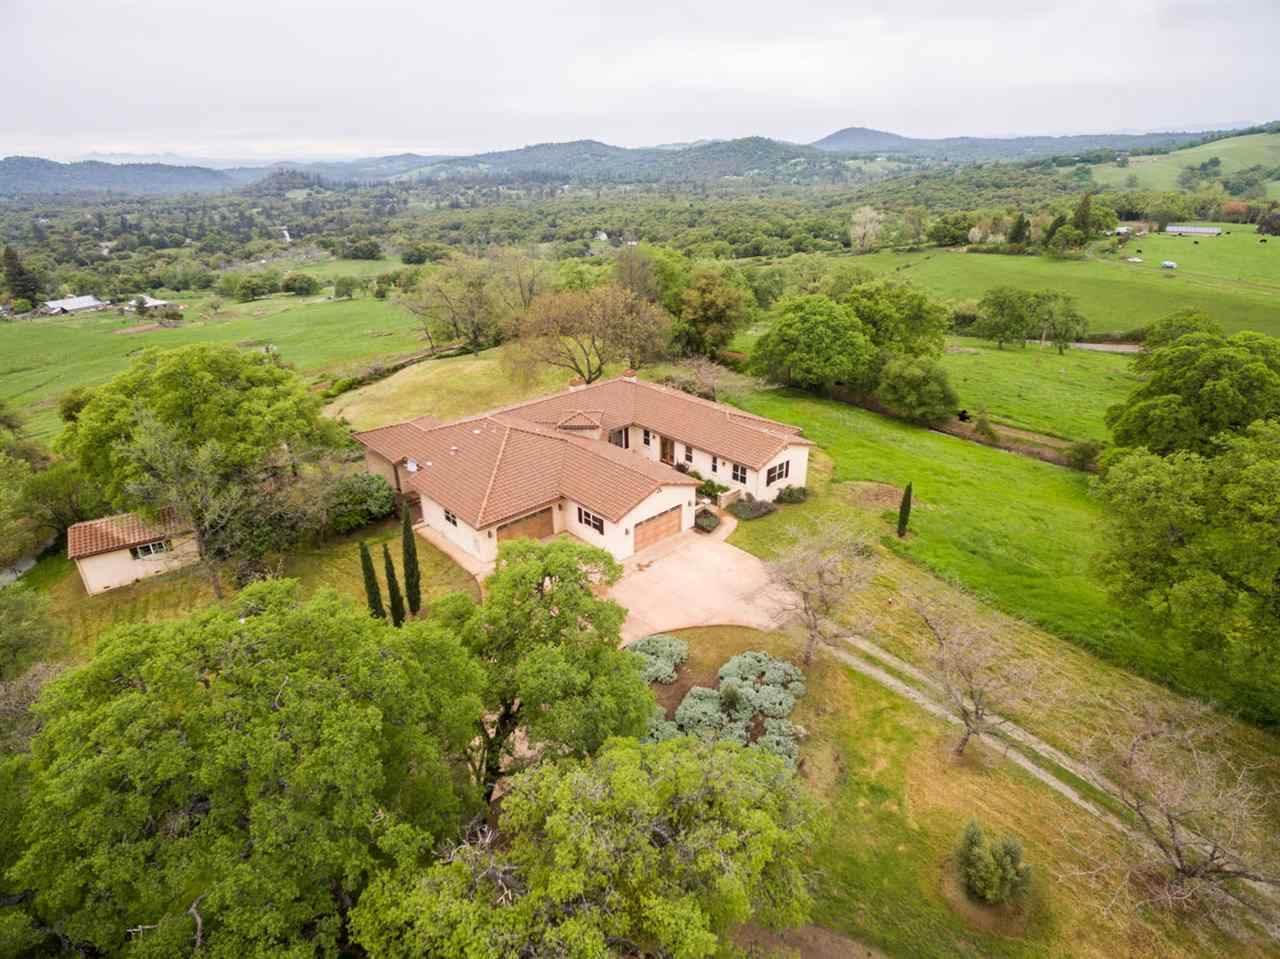 Casa Unifamiliar por un Venta en 13747 Lime Kiln Road Grass Valley, California 95949 Estados Unidos